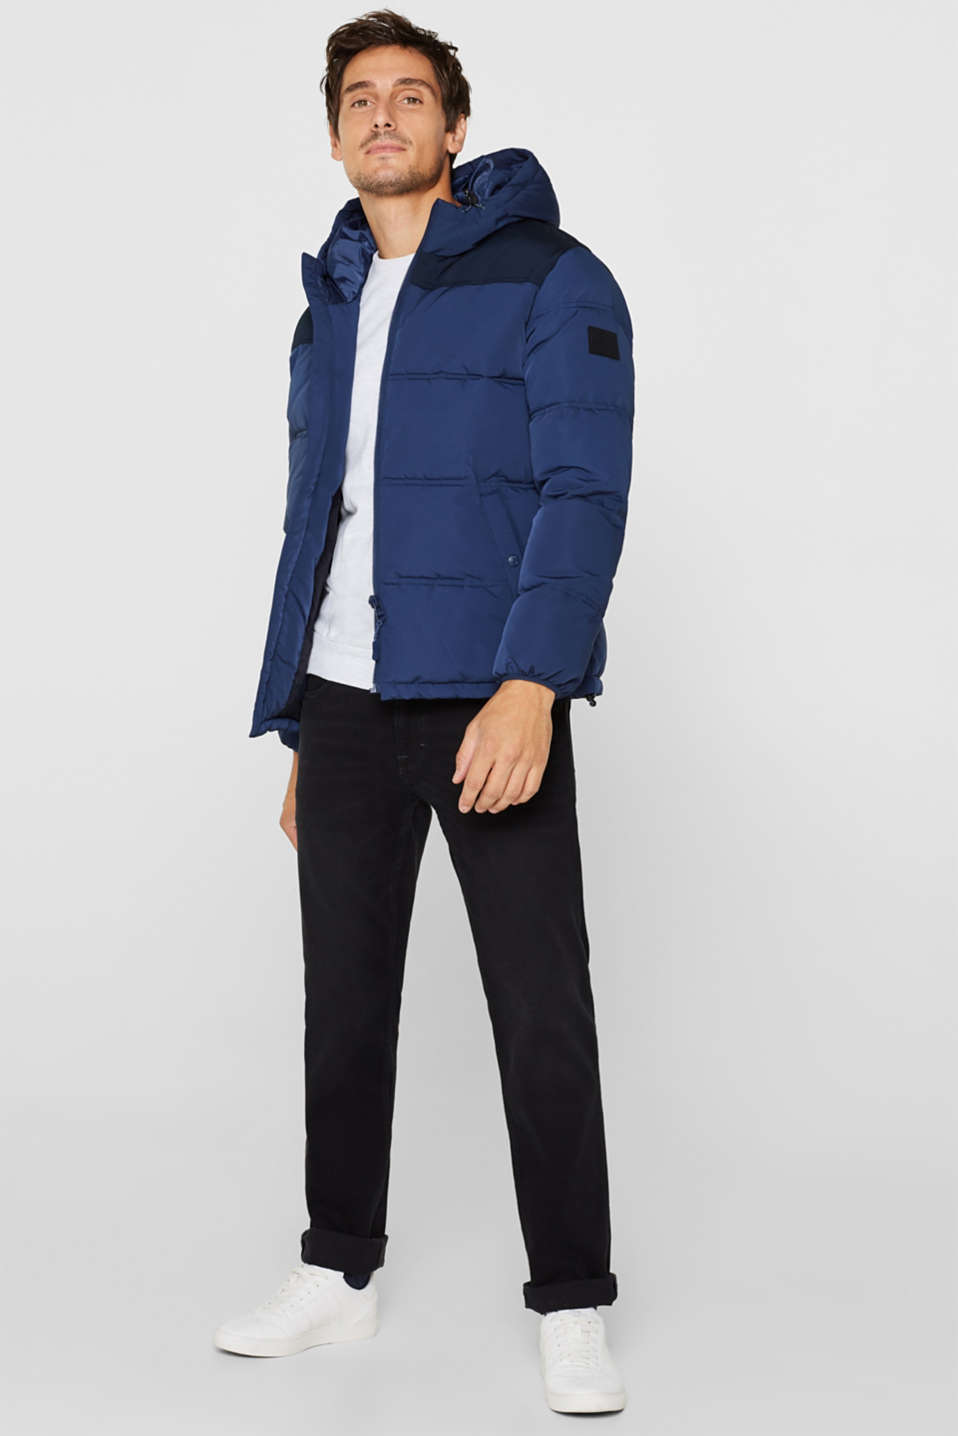 Jackets outdoor woven, BLUE, detail image number 1